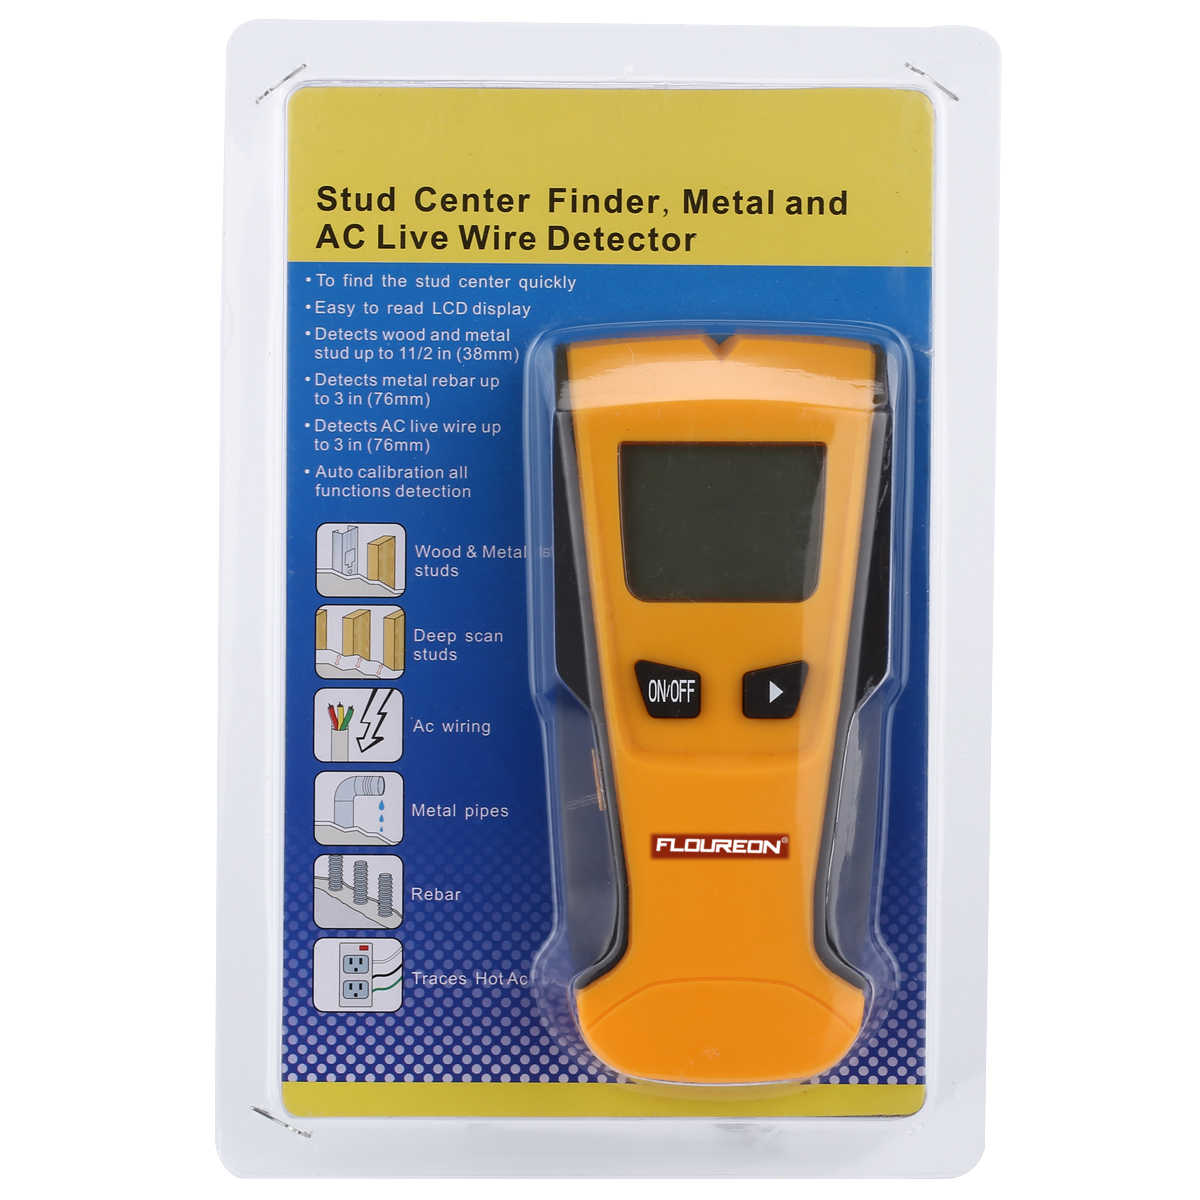 floureon 3 in 1 stud finder wood metal detector wiring ac live wire wall scanner detector electric box finder bosch wall scanner eoutil th240 multi scanner wall stud